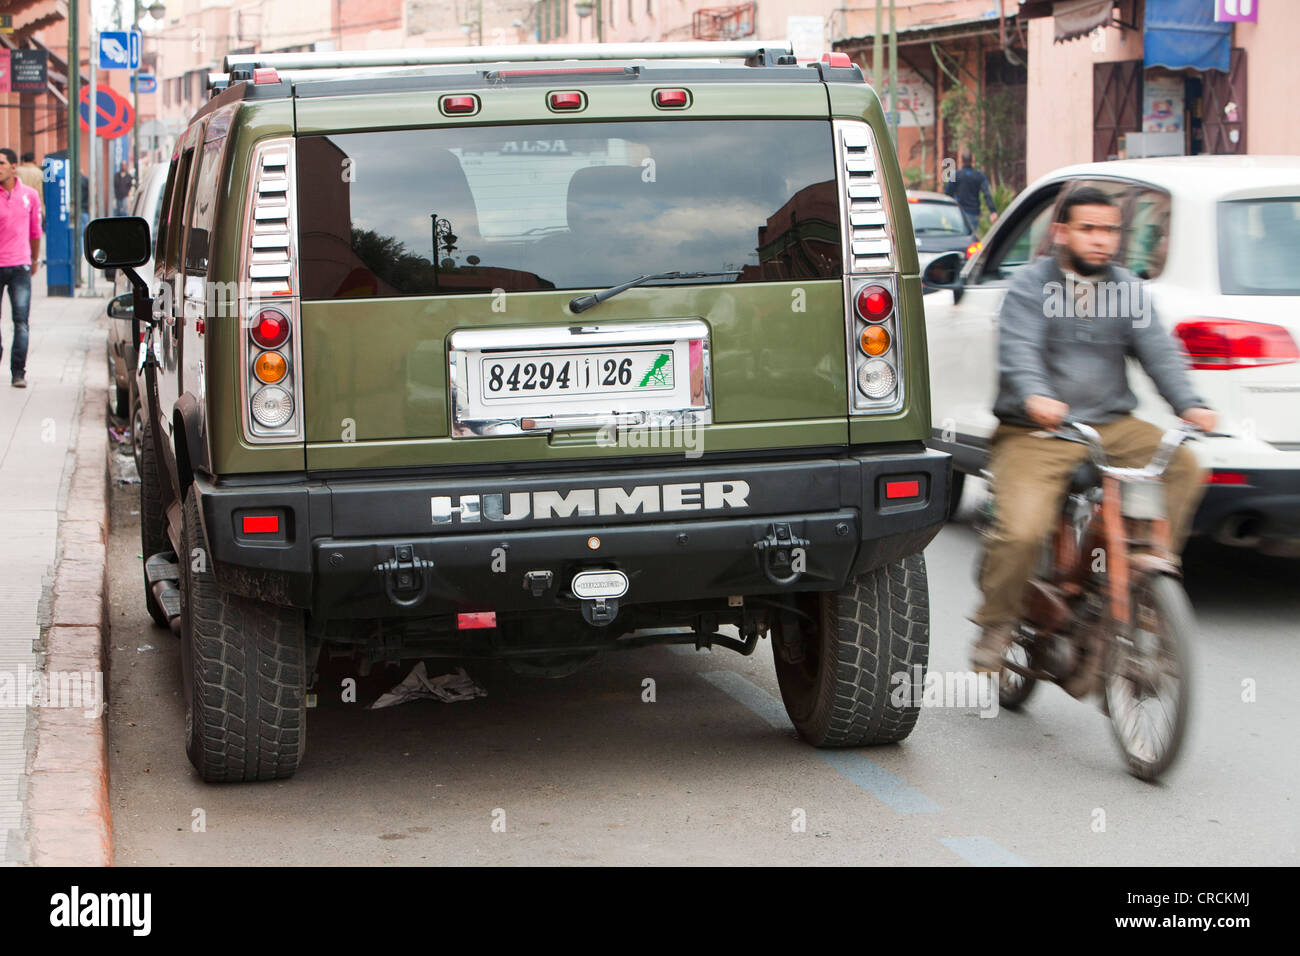 A Hummer in Marrakech, Morocco, North Africa. - Stock Image